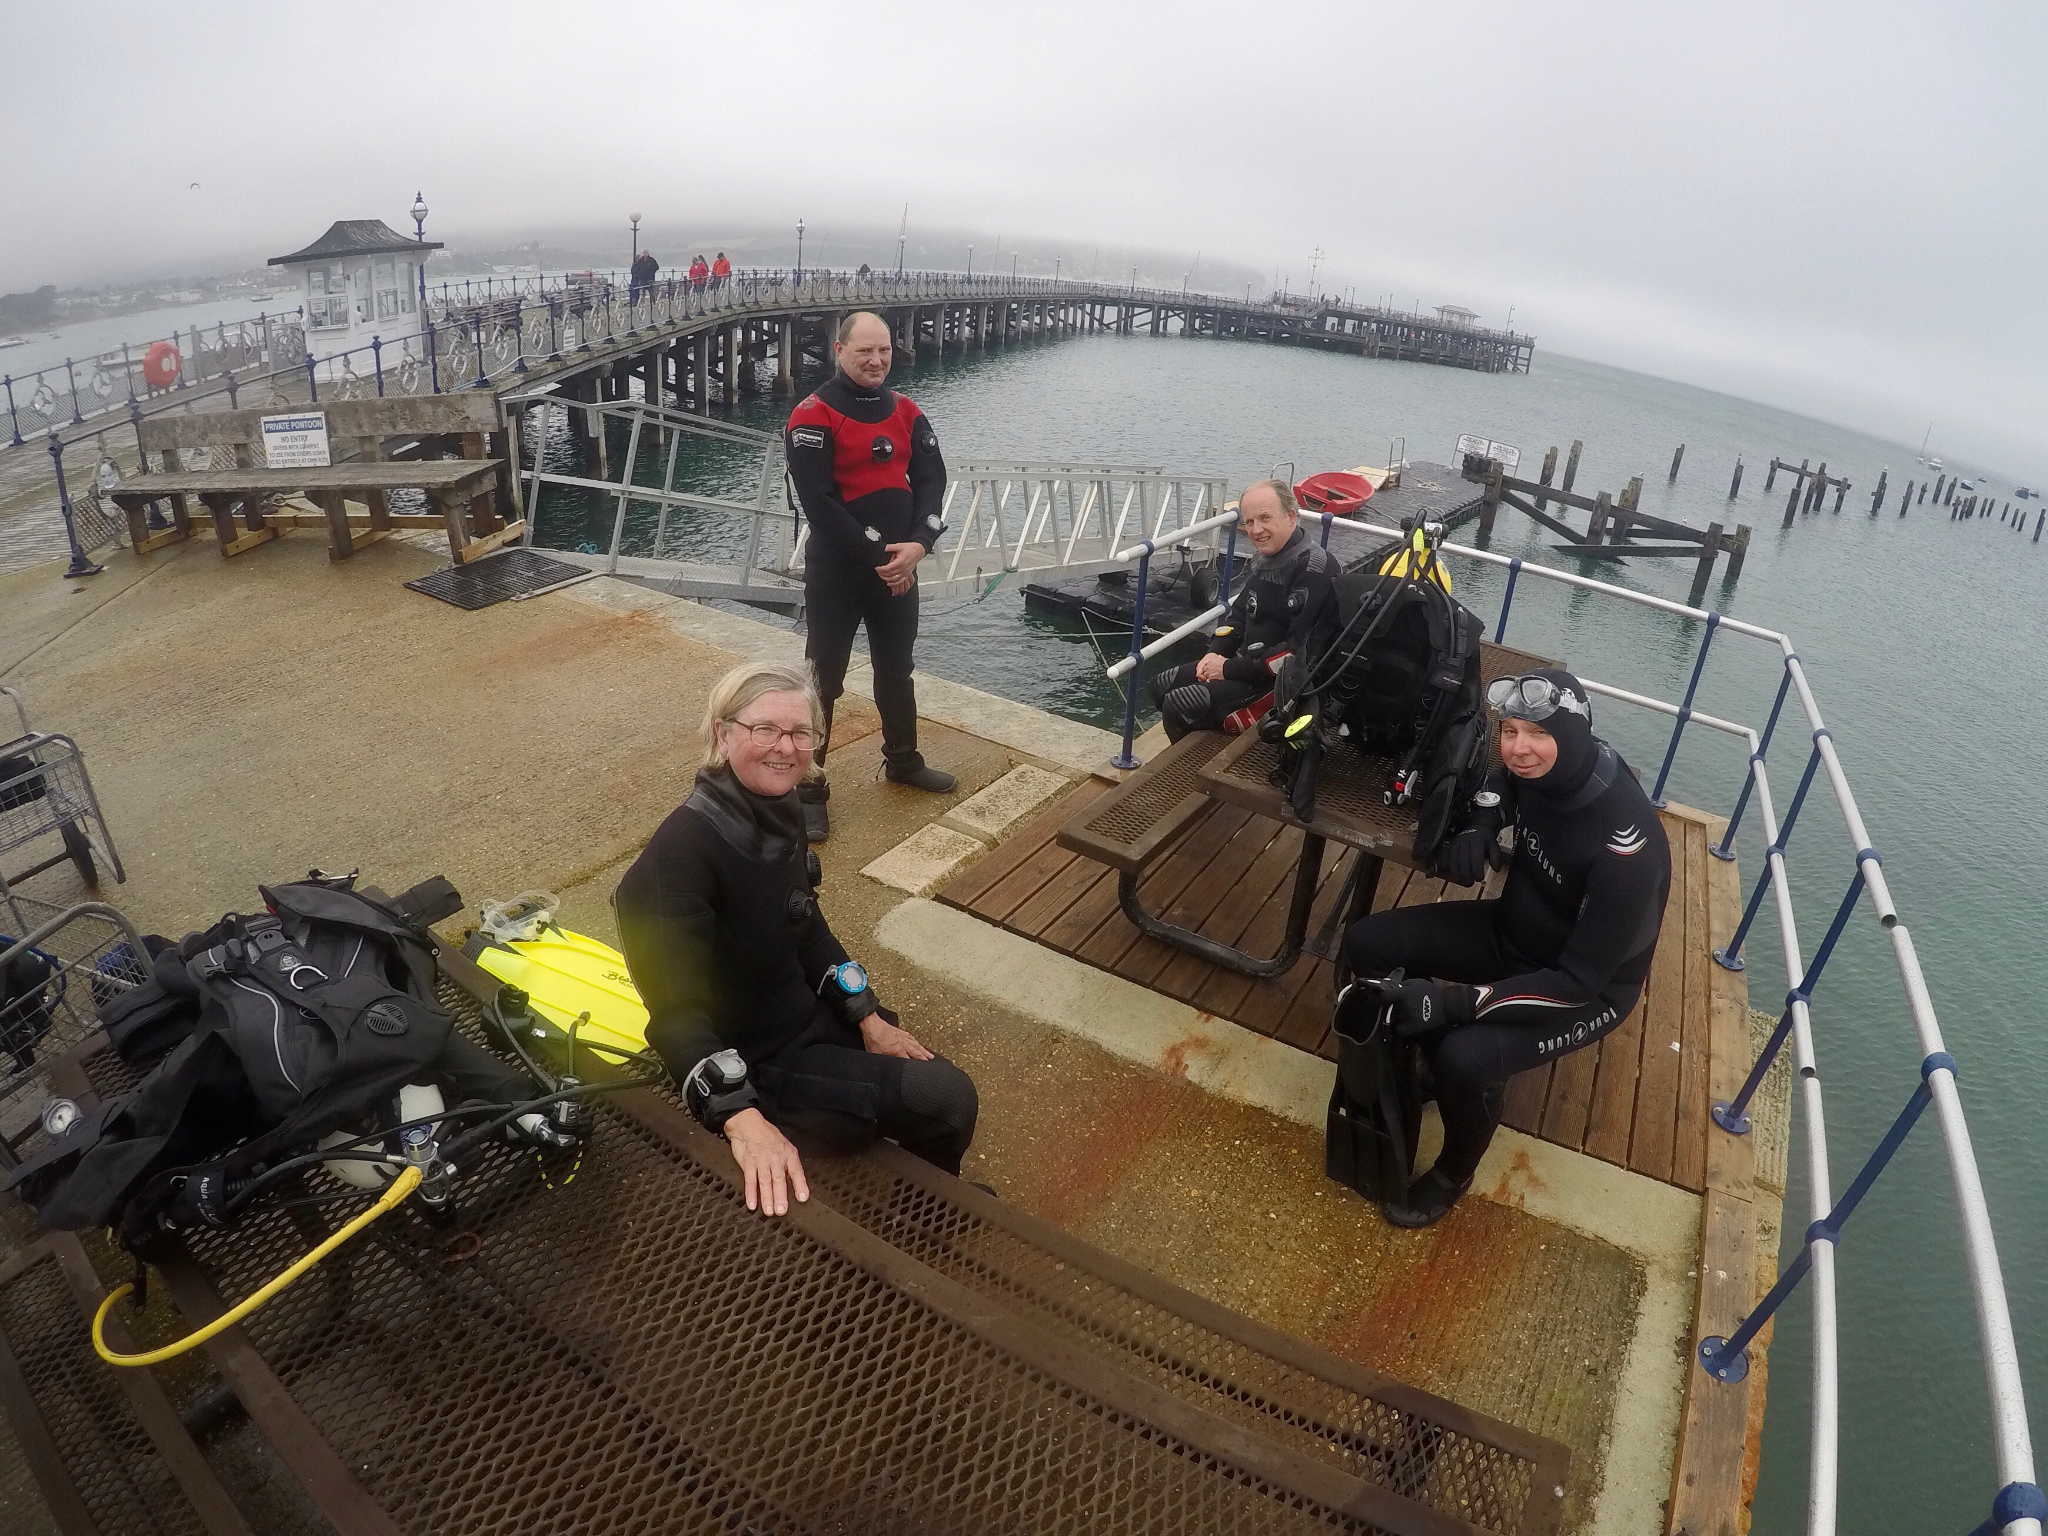 Relaxing between dives on Swanage Pier